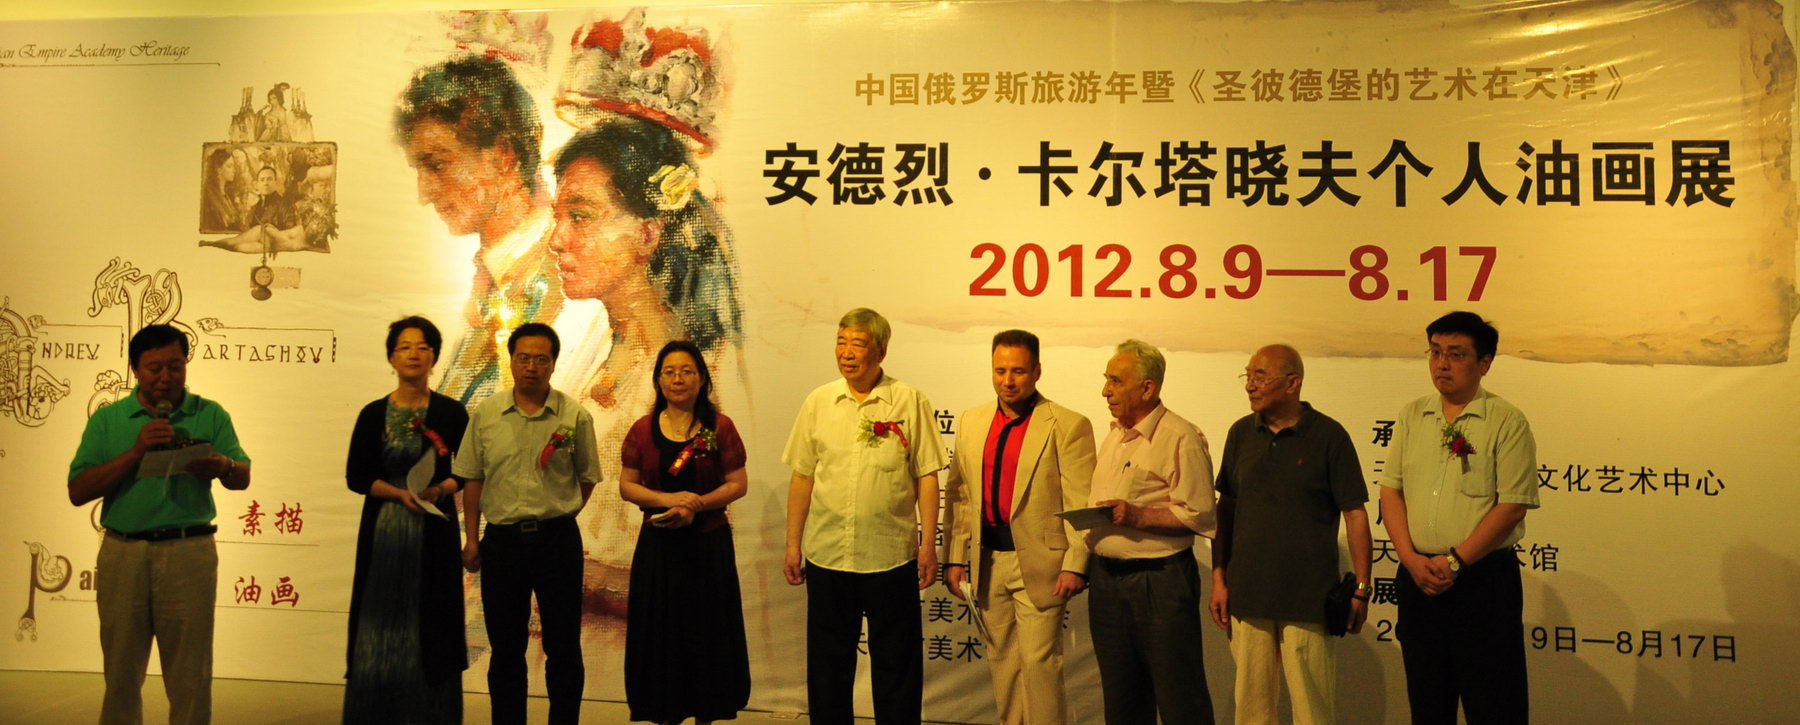 Solo show at the Tianjin National Art Museum 2012